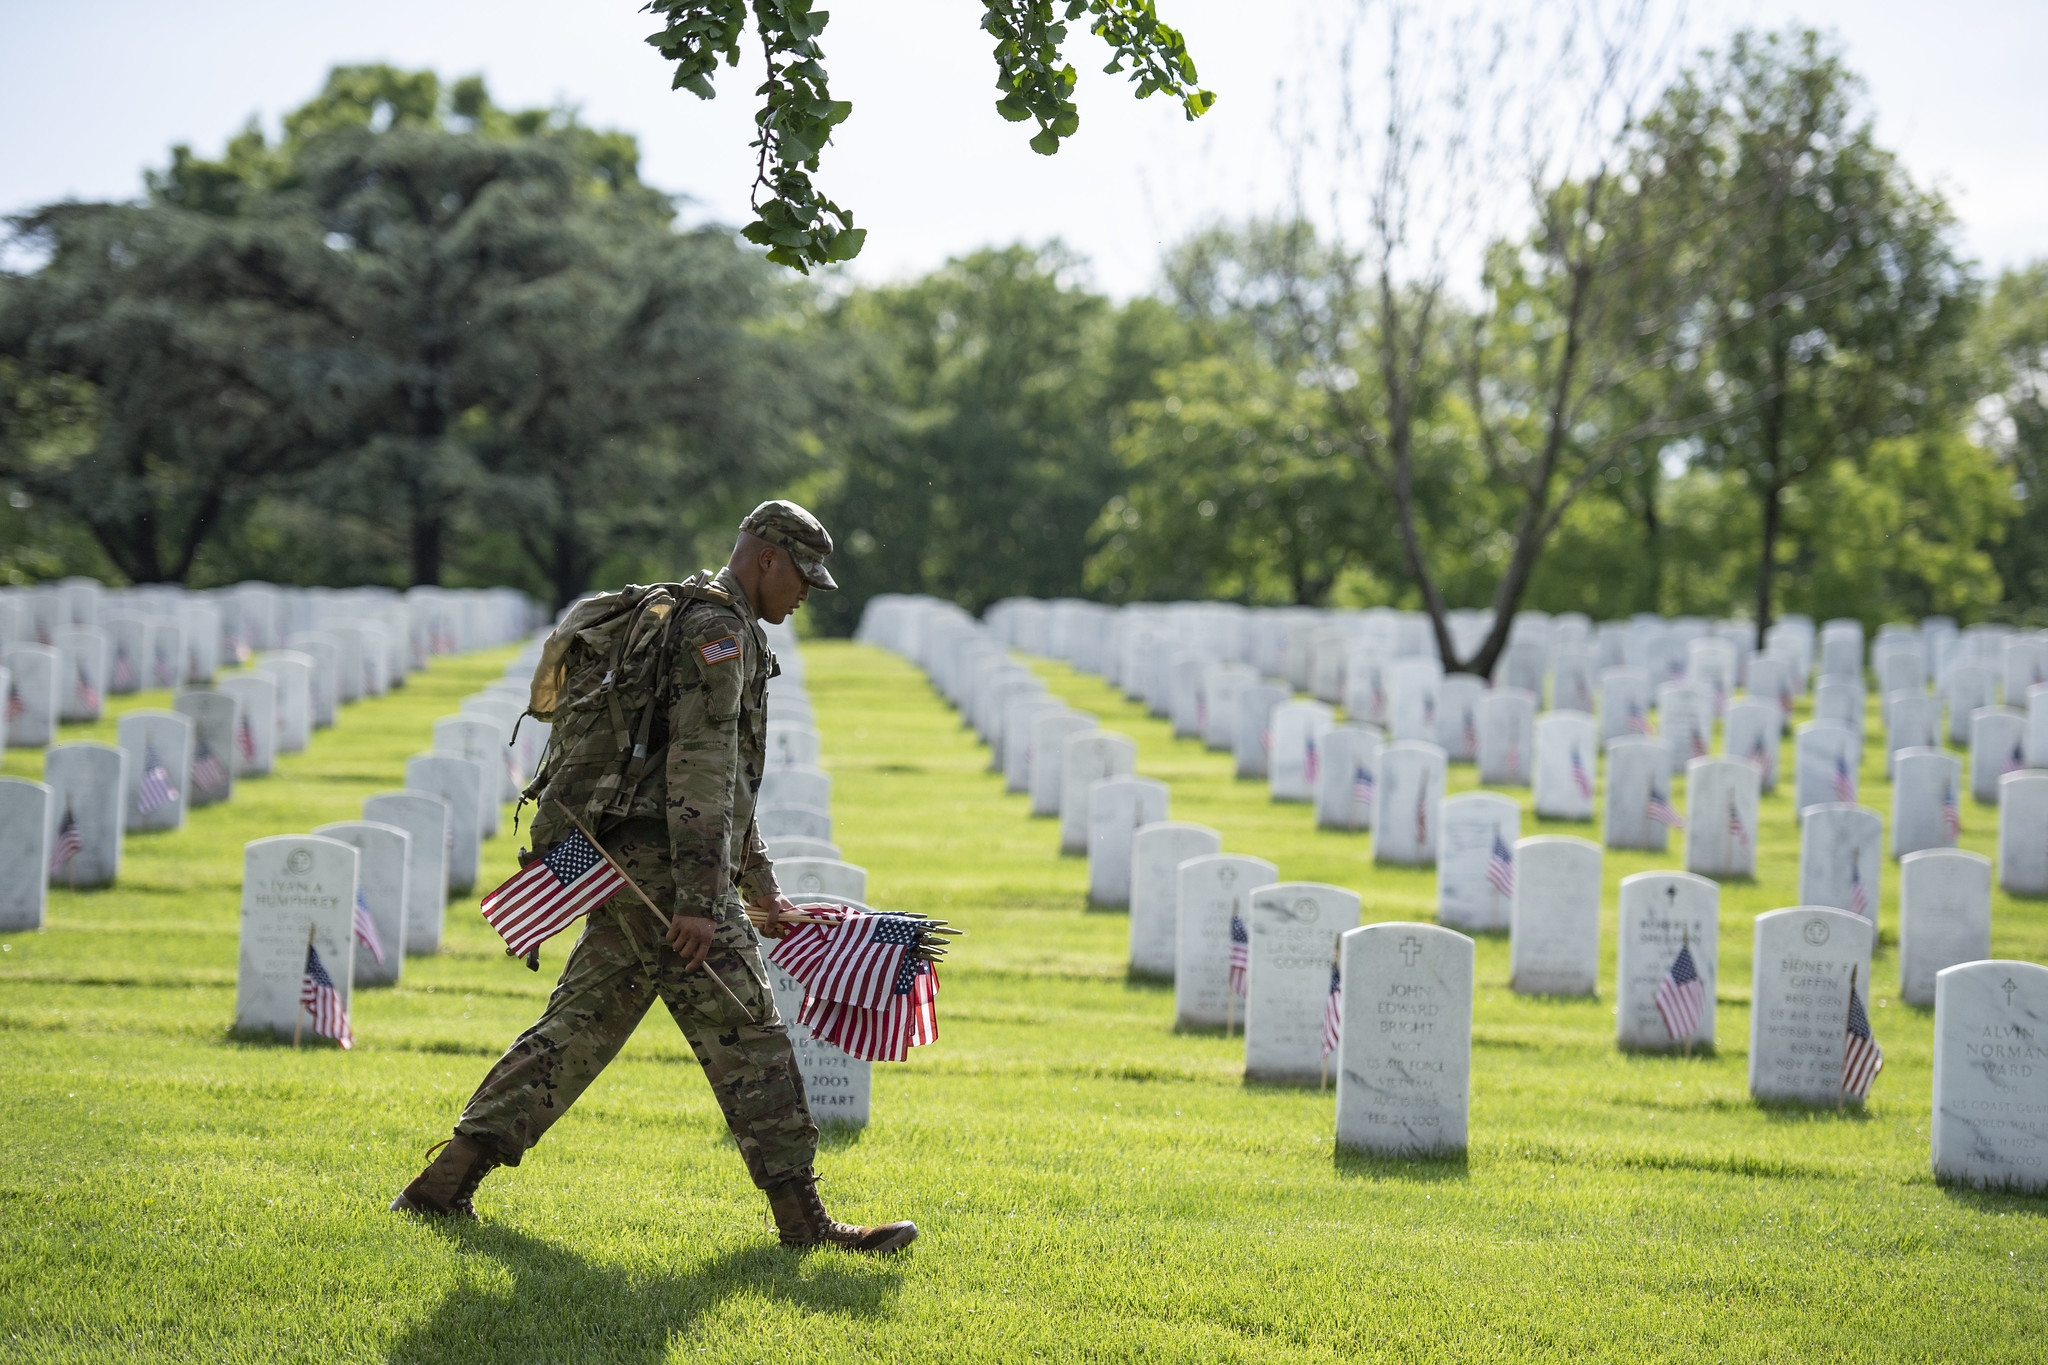 A soldier from the U.S. Army's 3rd Infantry Regiment places flags in front of gravestones for Memorial Day